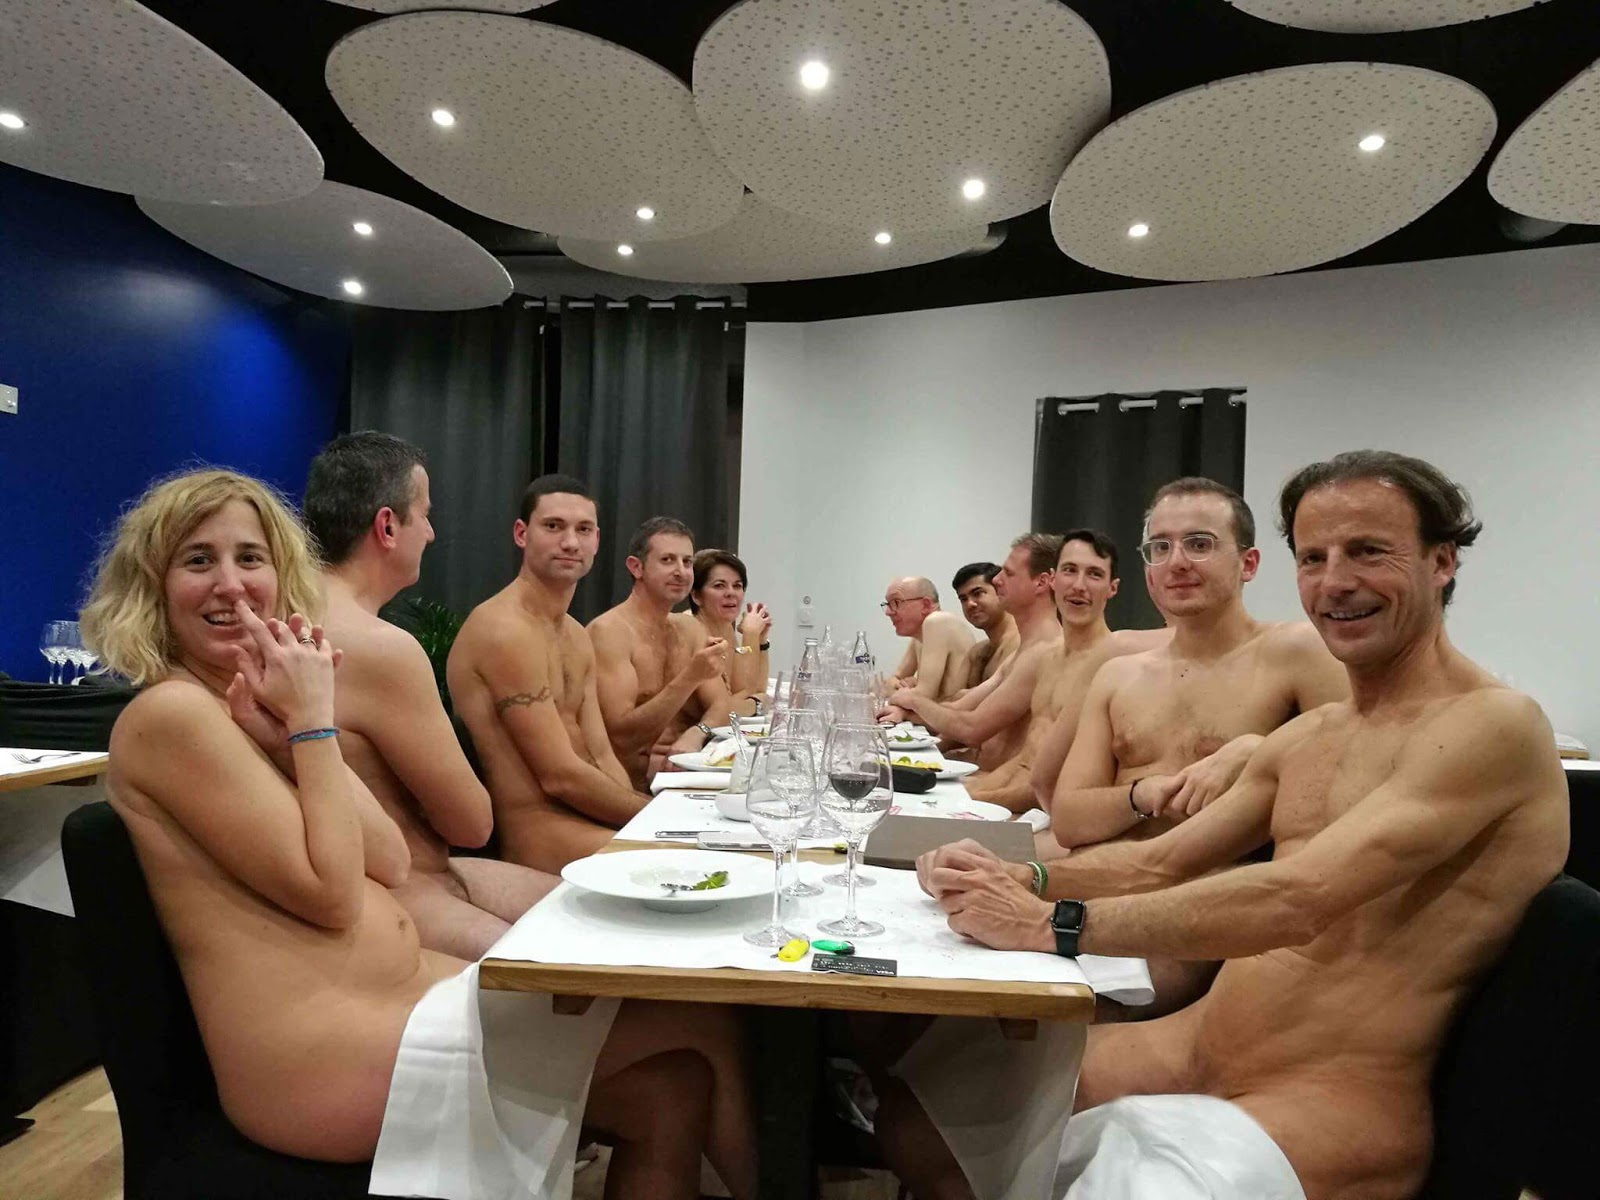 Russian Chefs In Naked Lockdown Protest After Coronavirus Strips Them Of Income